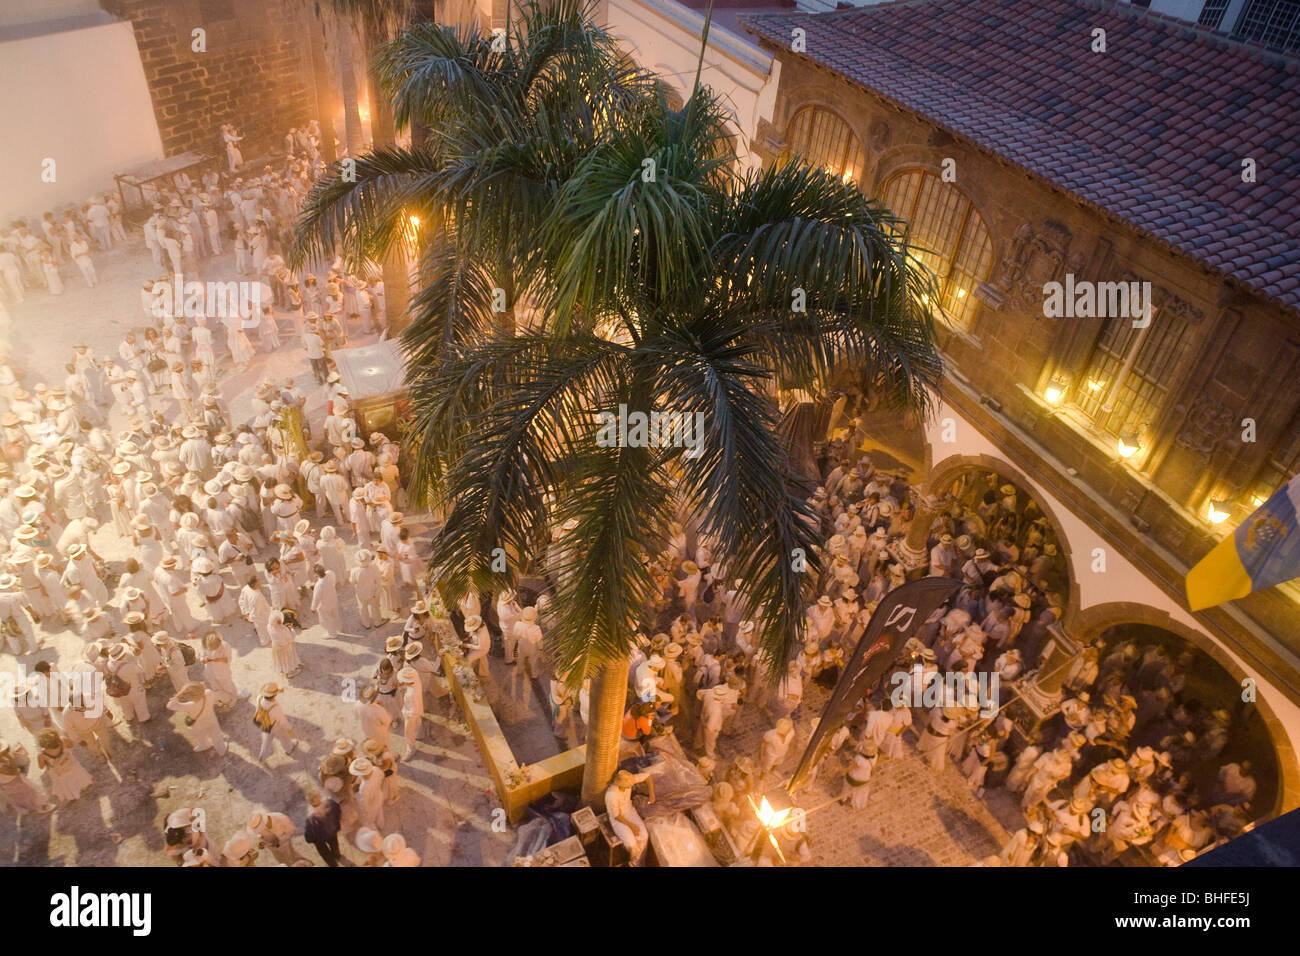 Traditional talcum powder festival to celebrate the homecoming from the colonies, Fiesta de los Indianos, Santa - Stock Image